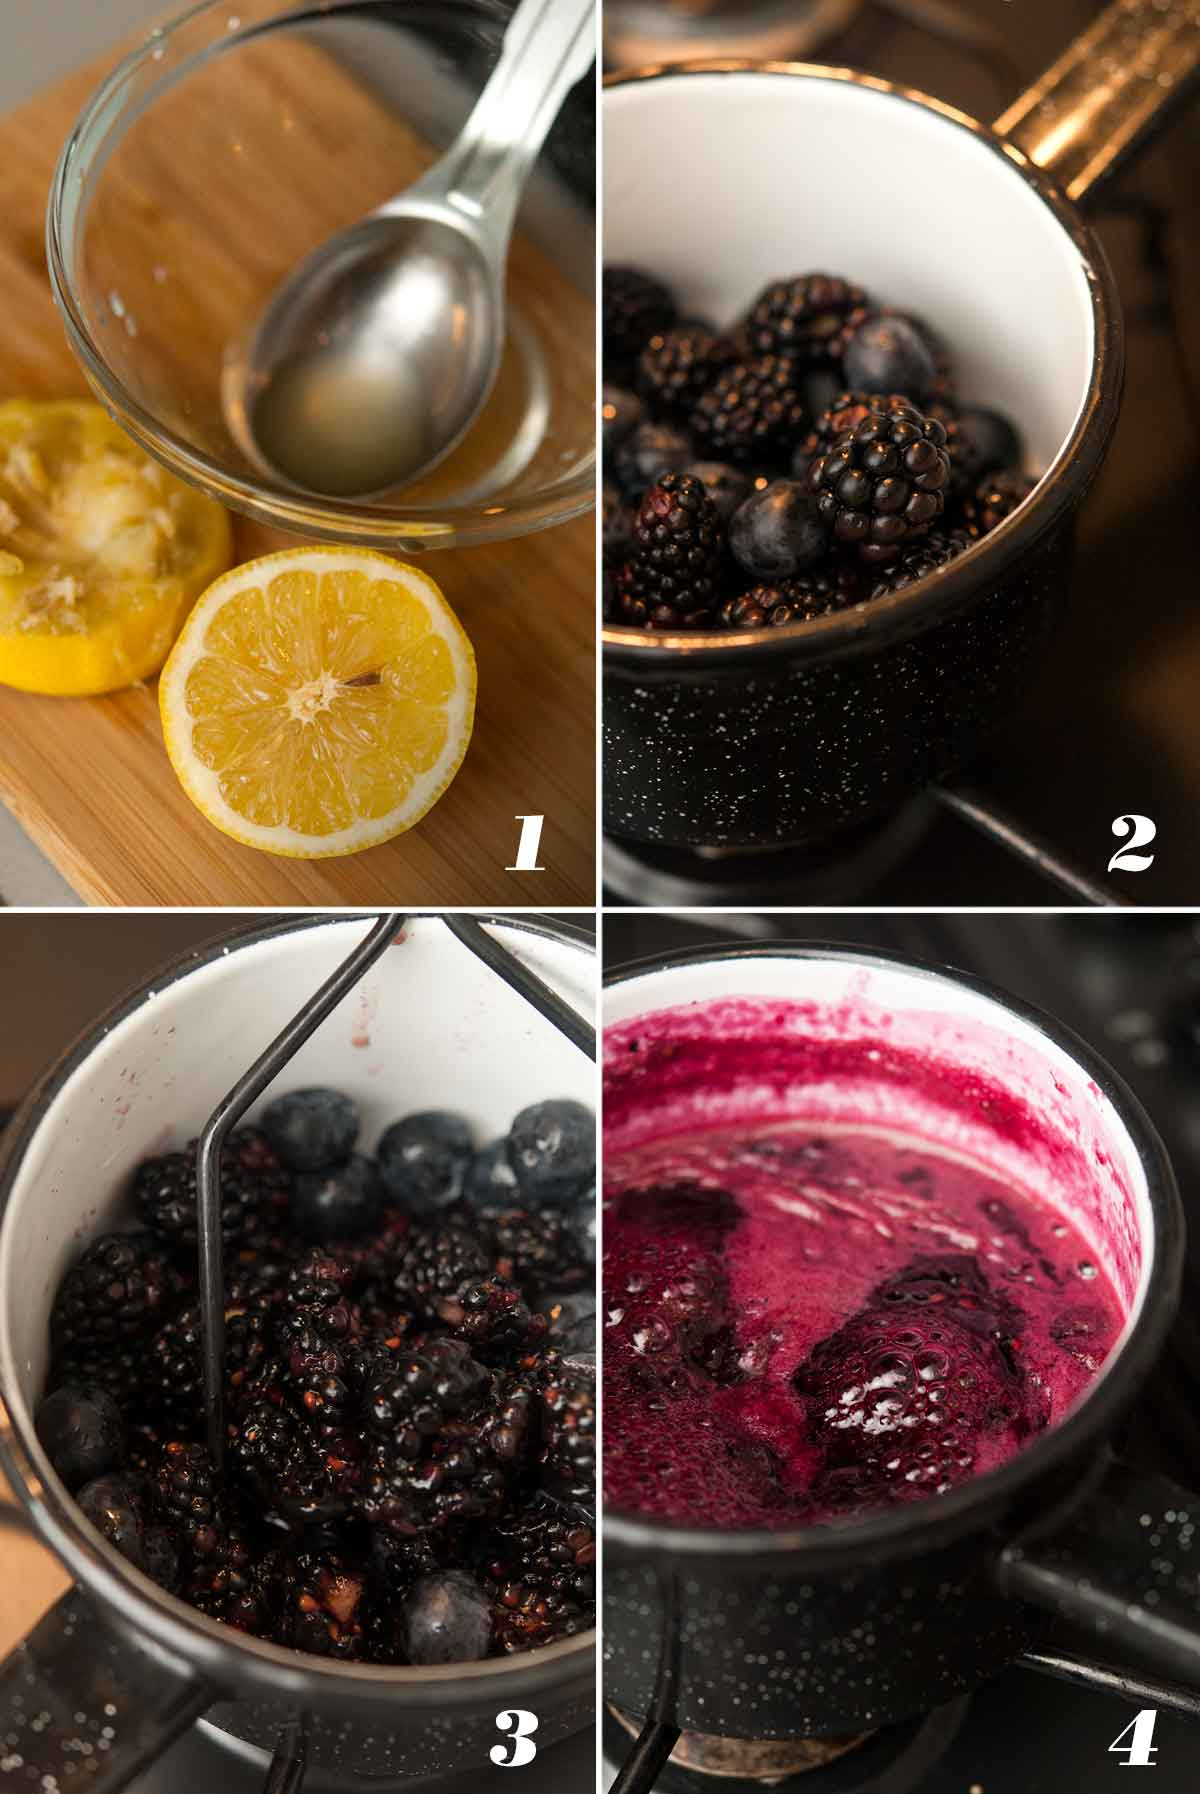 A collage of 4 numbered images showing how to make black and blueberry jam.